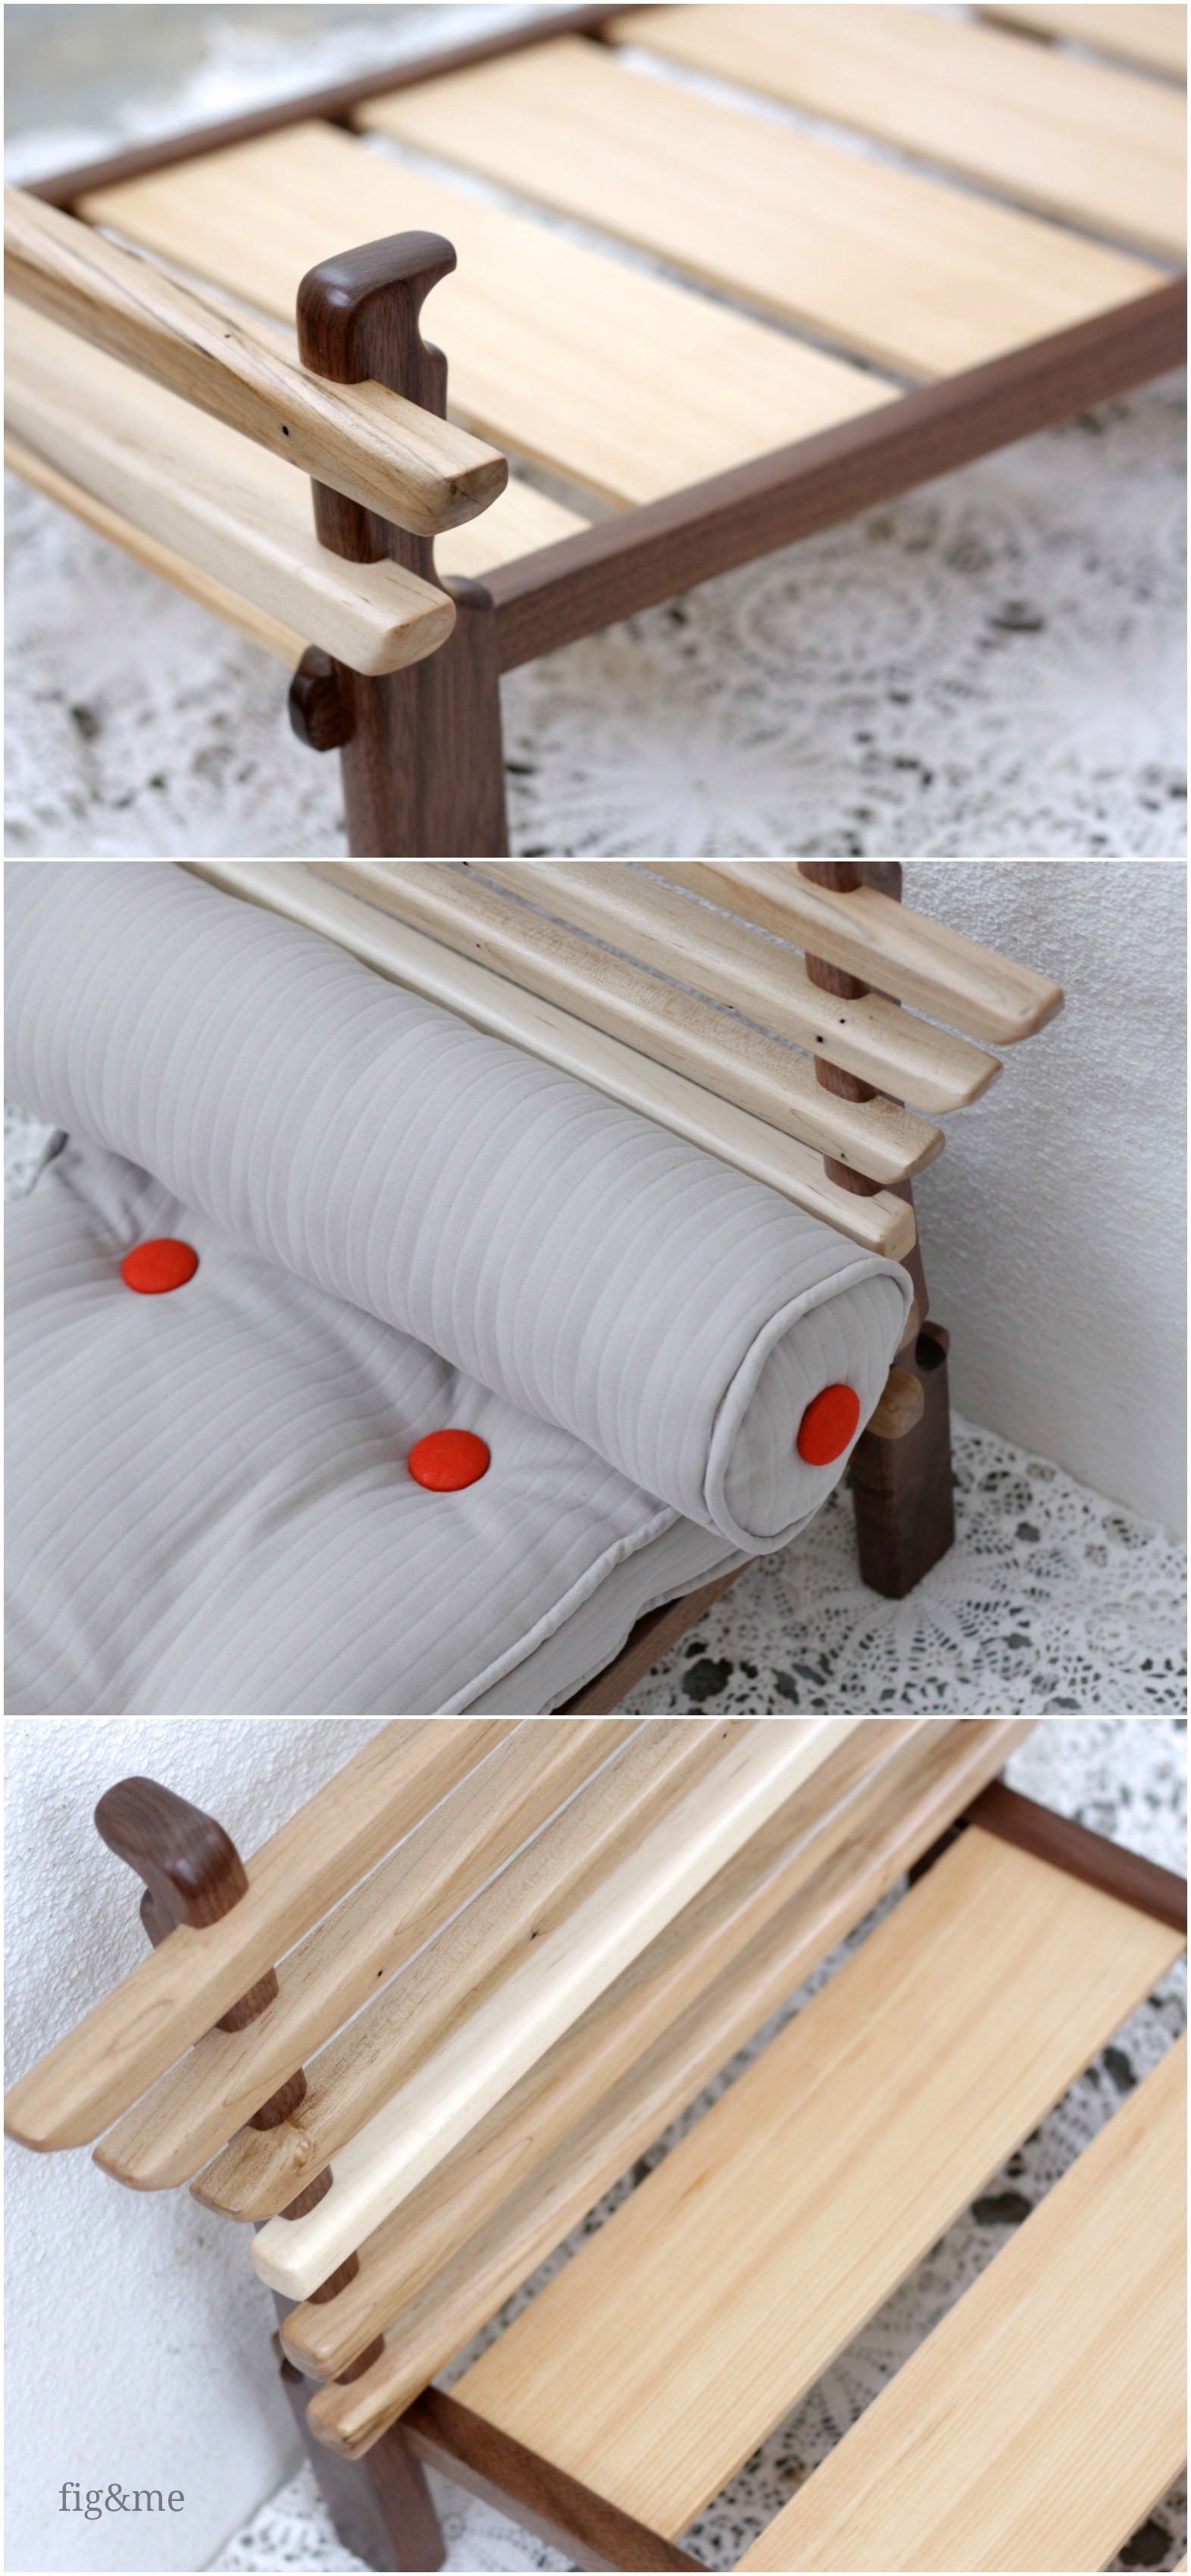 Walnut and ambrosia maple doll bed, by Fig & me